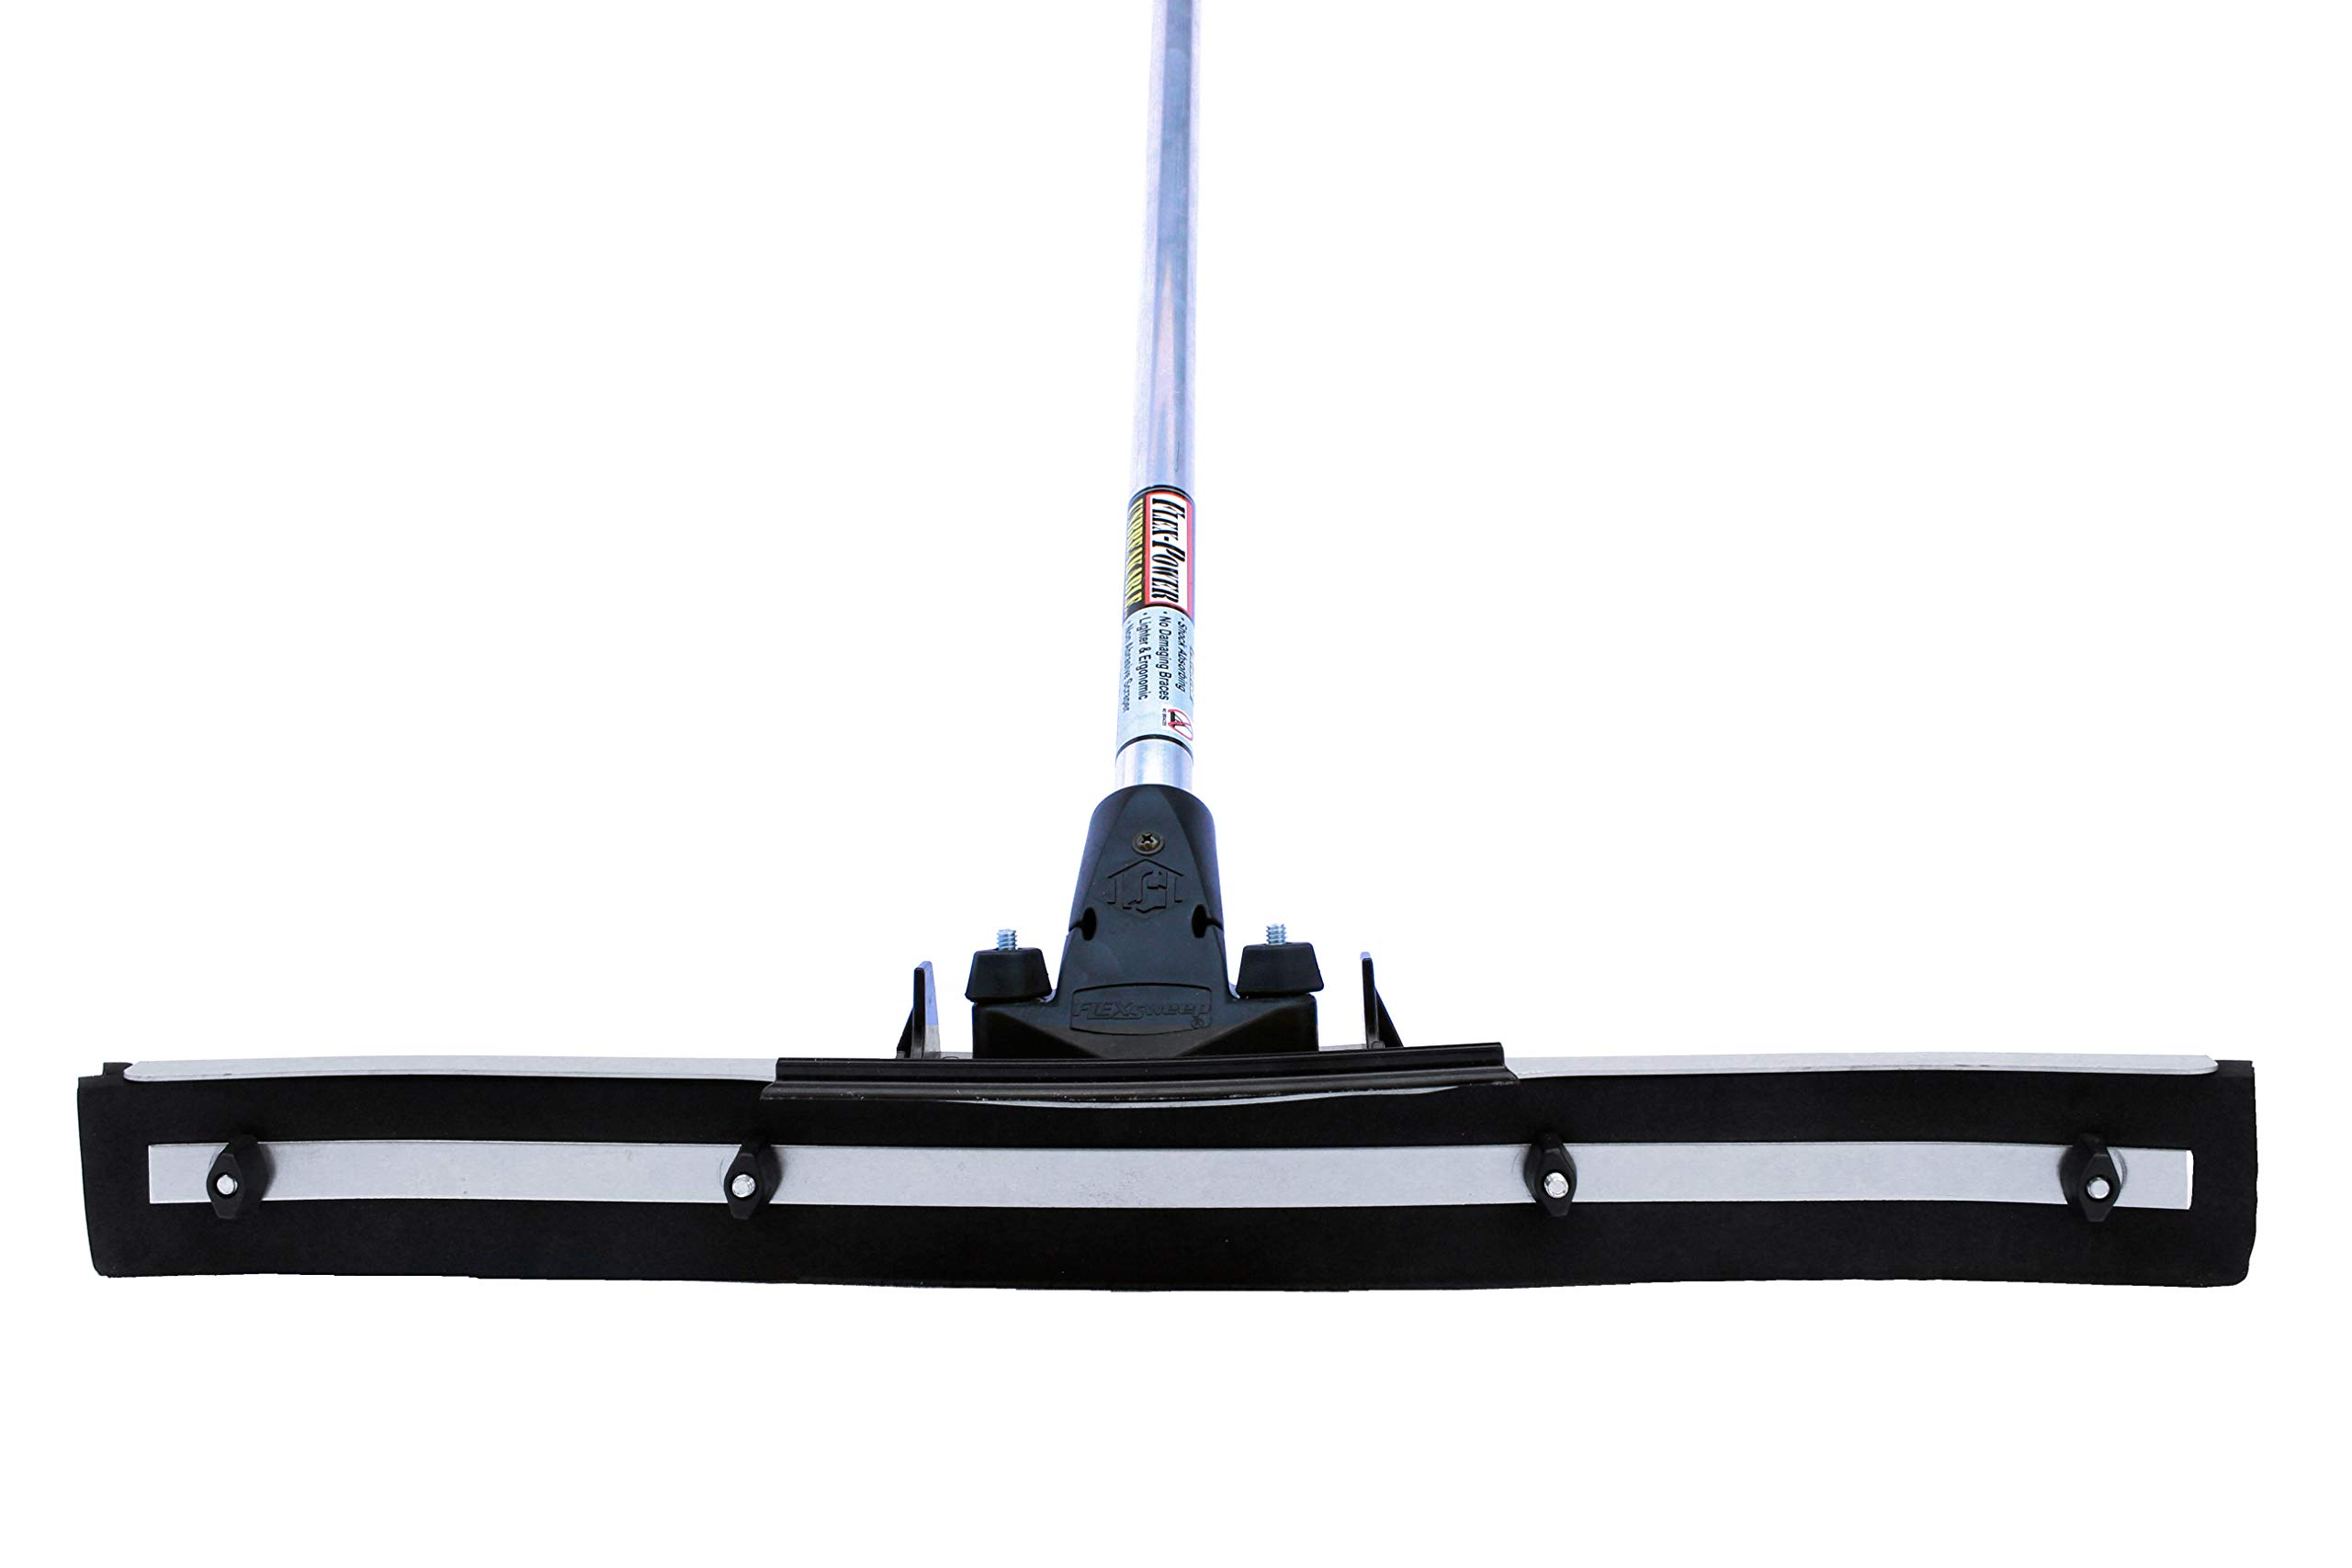 Commercial 24'' Heavy Duty Floor Squeegee by FlexSweep (Guaranteed Unbreakable Handle) New Patent Pending Easy Flip Blades That Doubles The Blade Life (Lasts Twice As Long as Other Foam Squeegees)